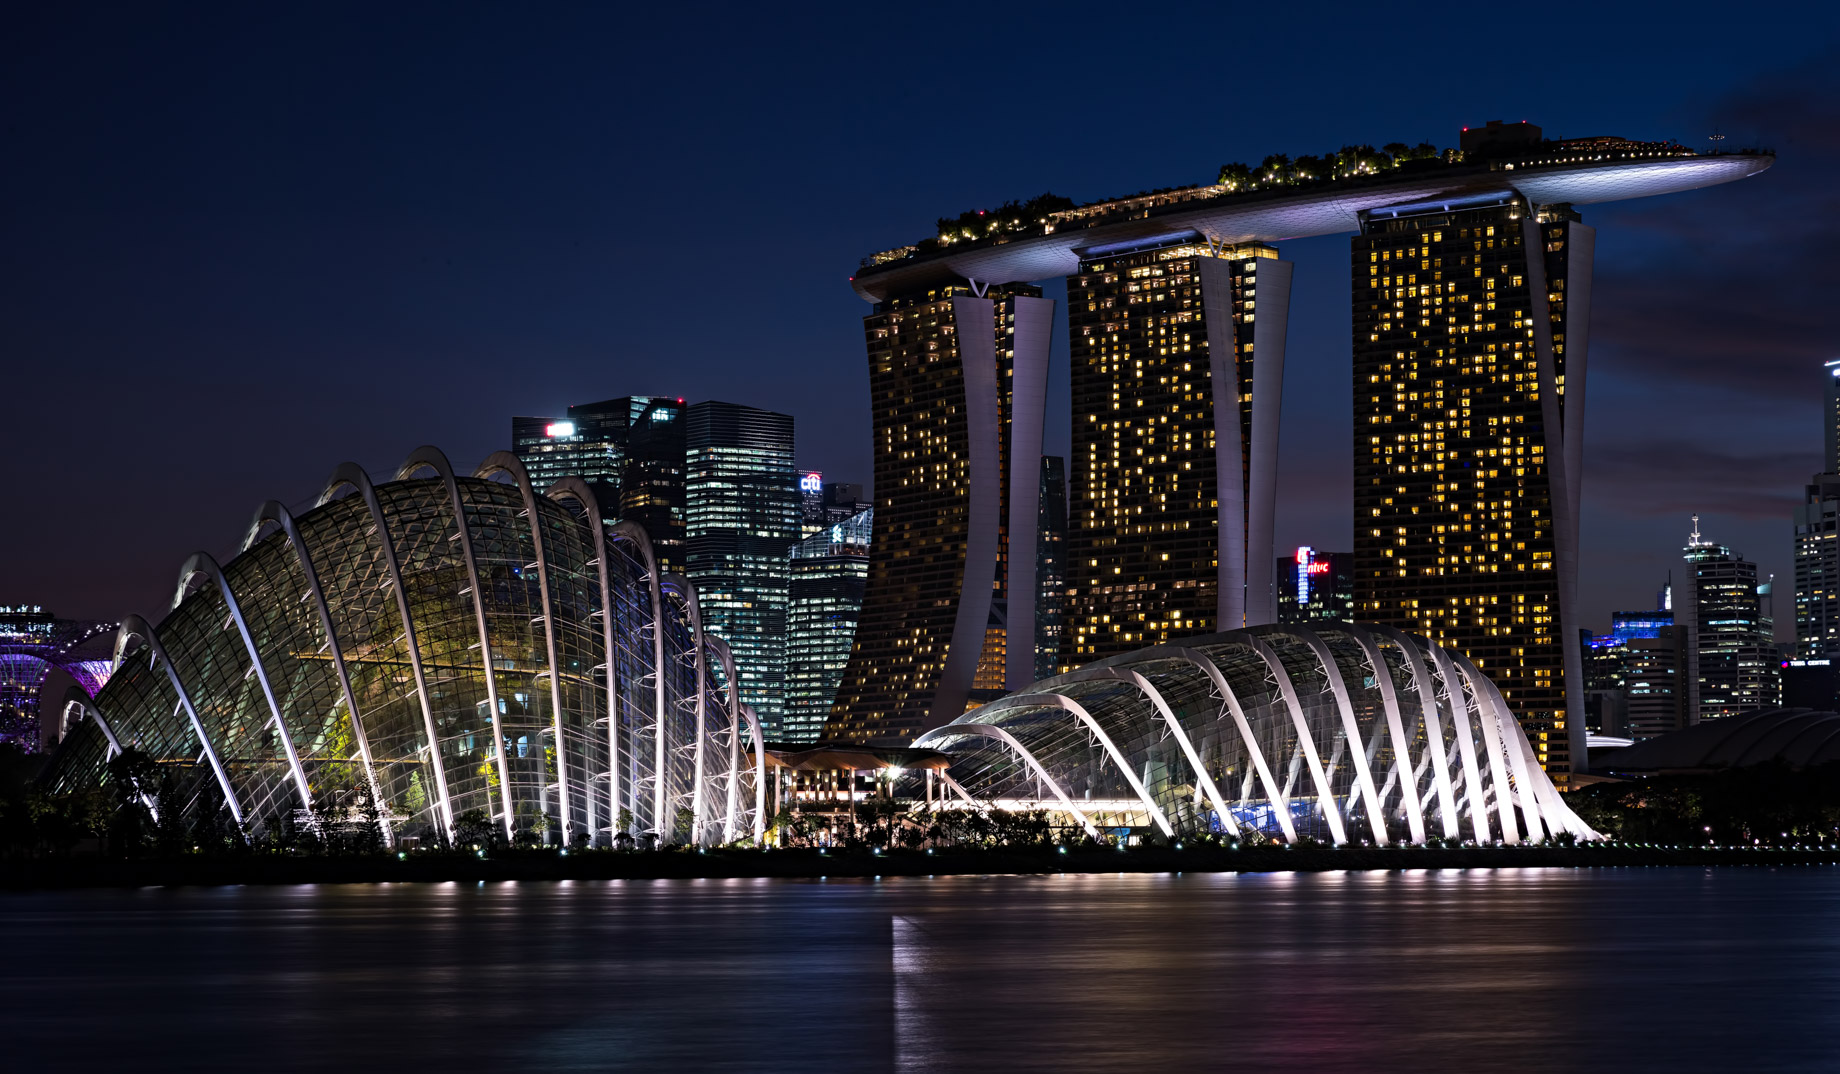 Marina Bay Sands Singapore - Billion Dollar Buildings - The Most Expensive Casino Properties in the World